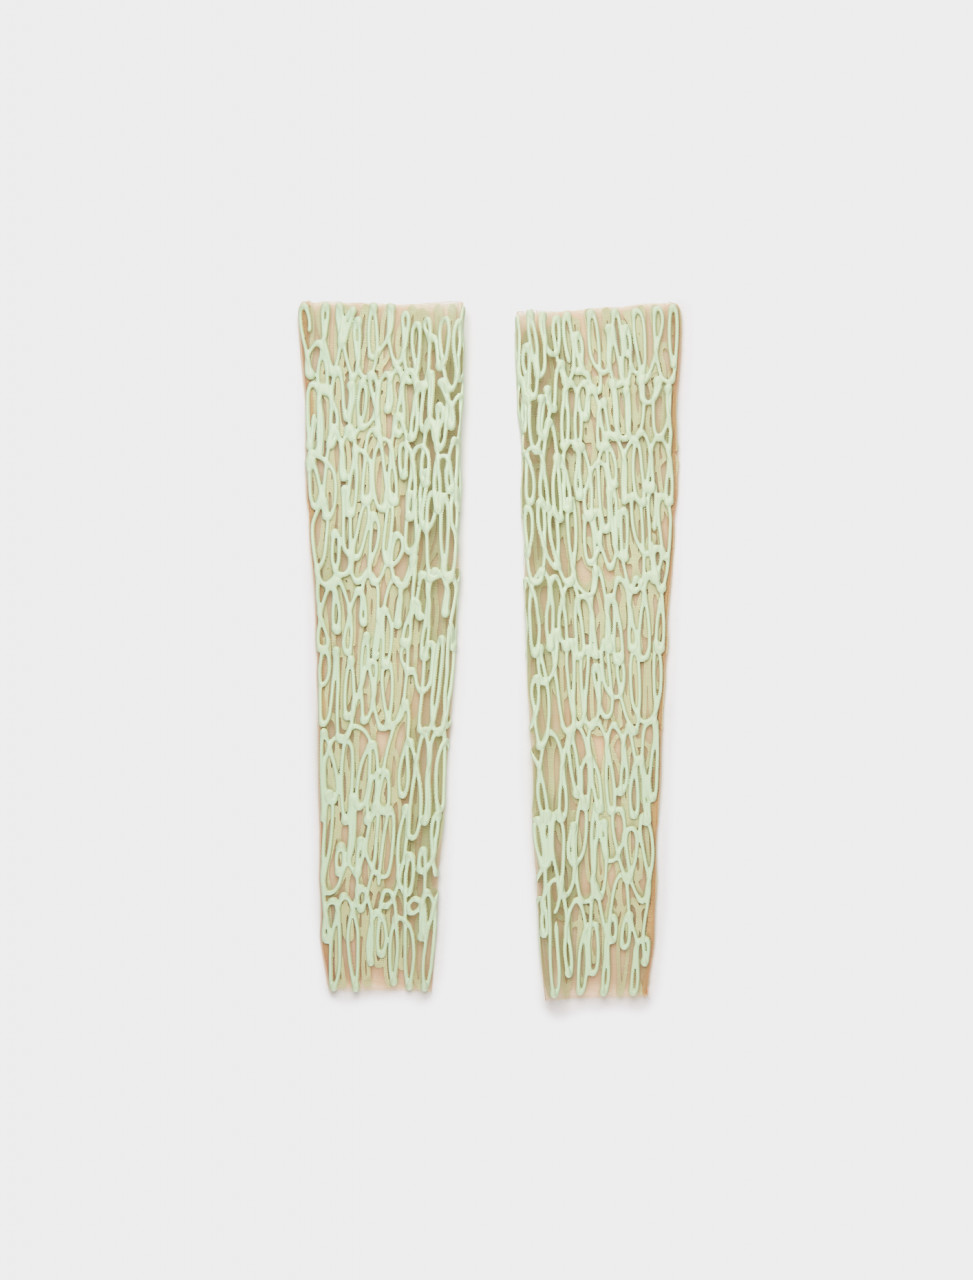 1000708 KASIA KUCHARSKA ARM OR LEG PIECE PAIR GREEN